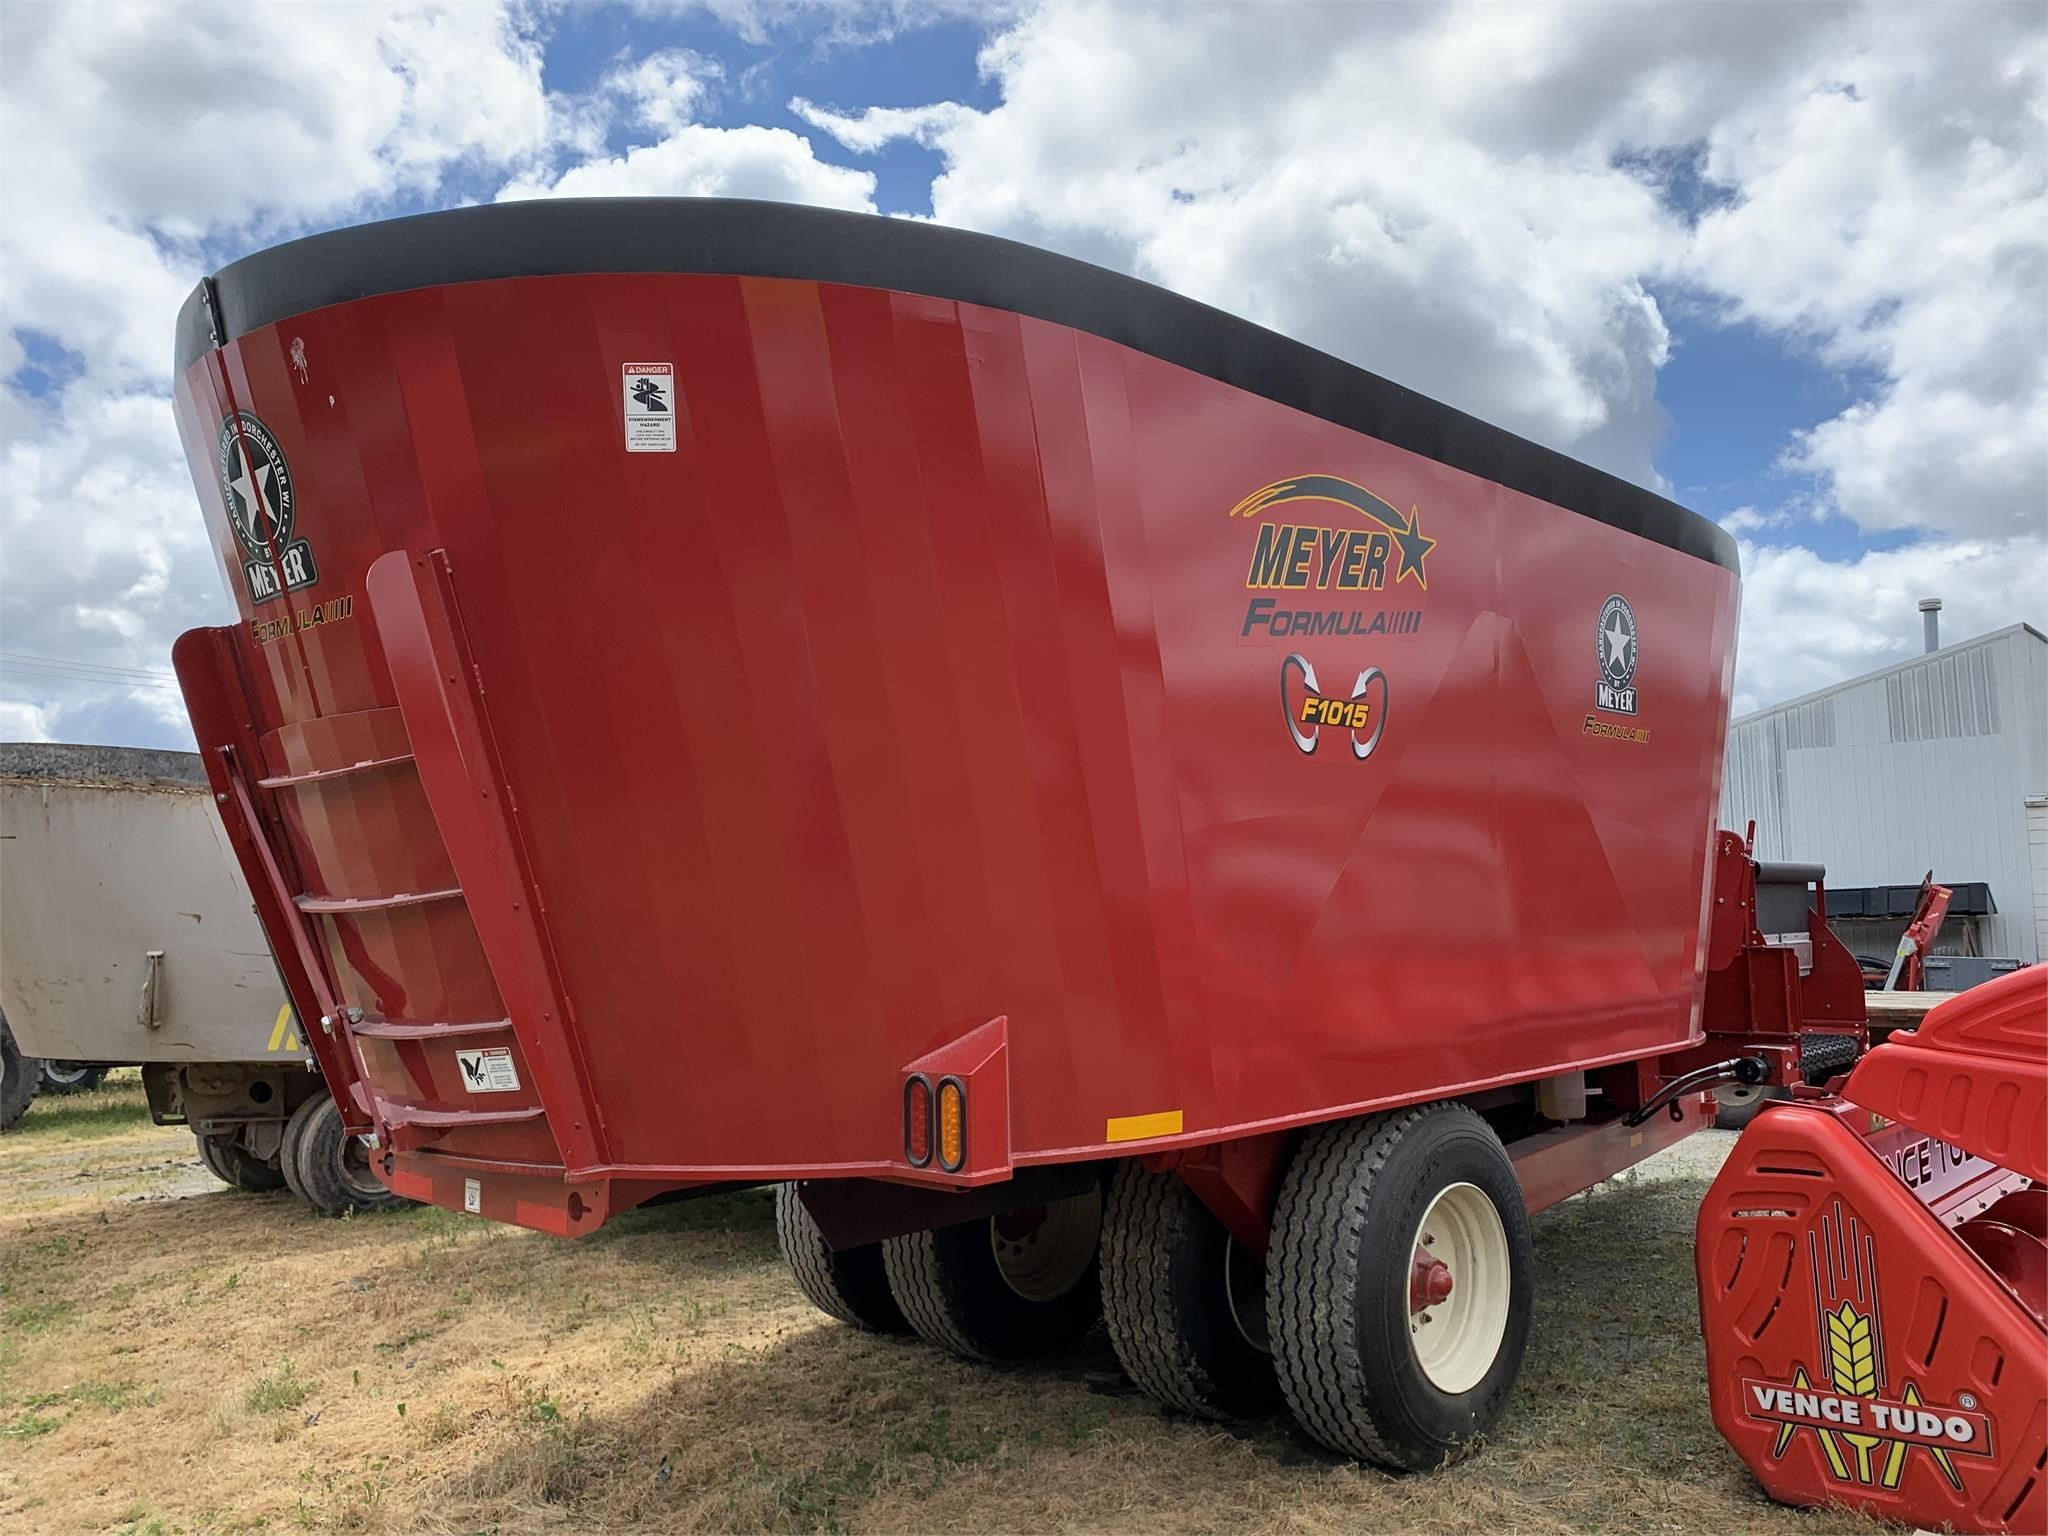 2020 Meyer F1015 Grinders and Mixer